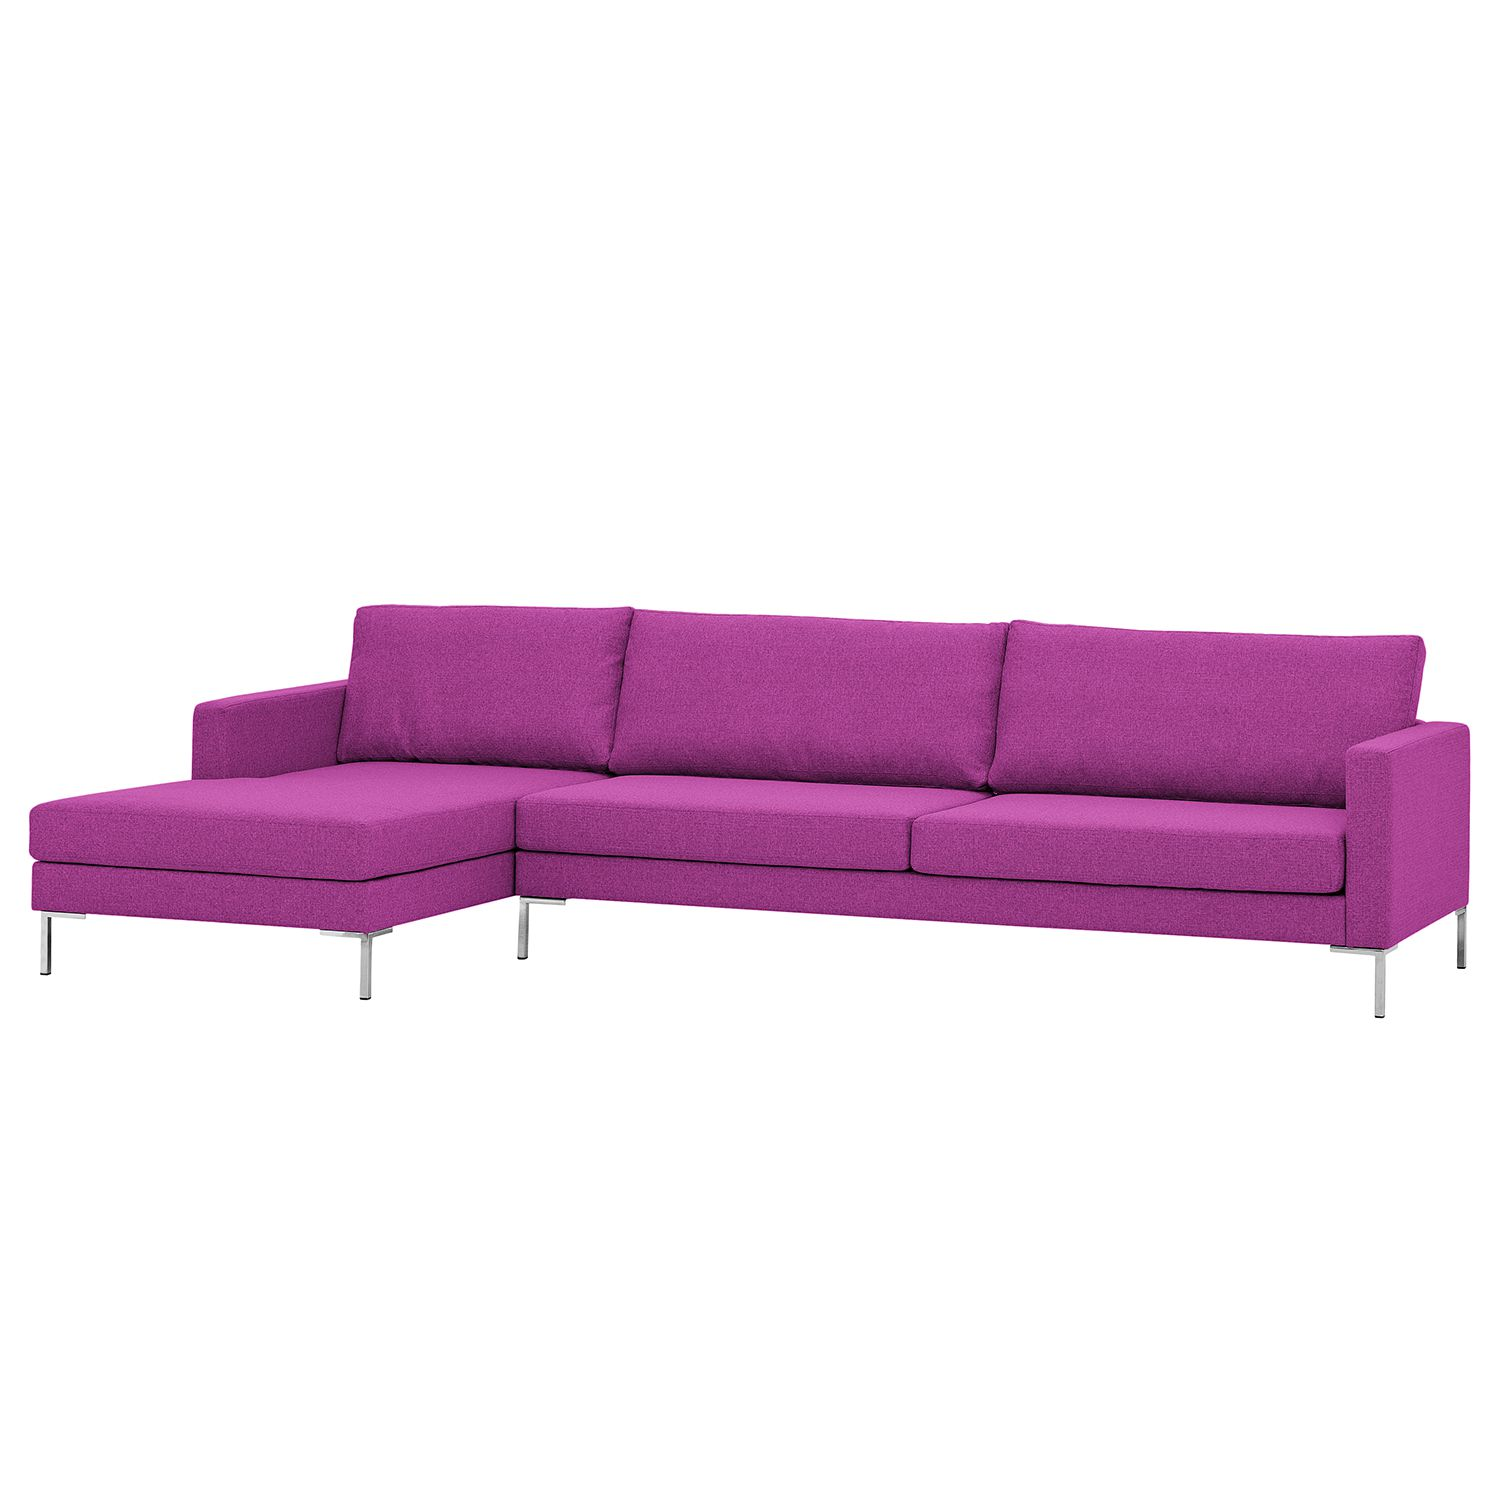 Ecksofa Portobello I - Webstoff - Longchair davorstehend links - Pink - 293 cm, Red Living